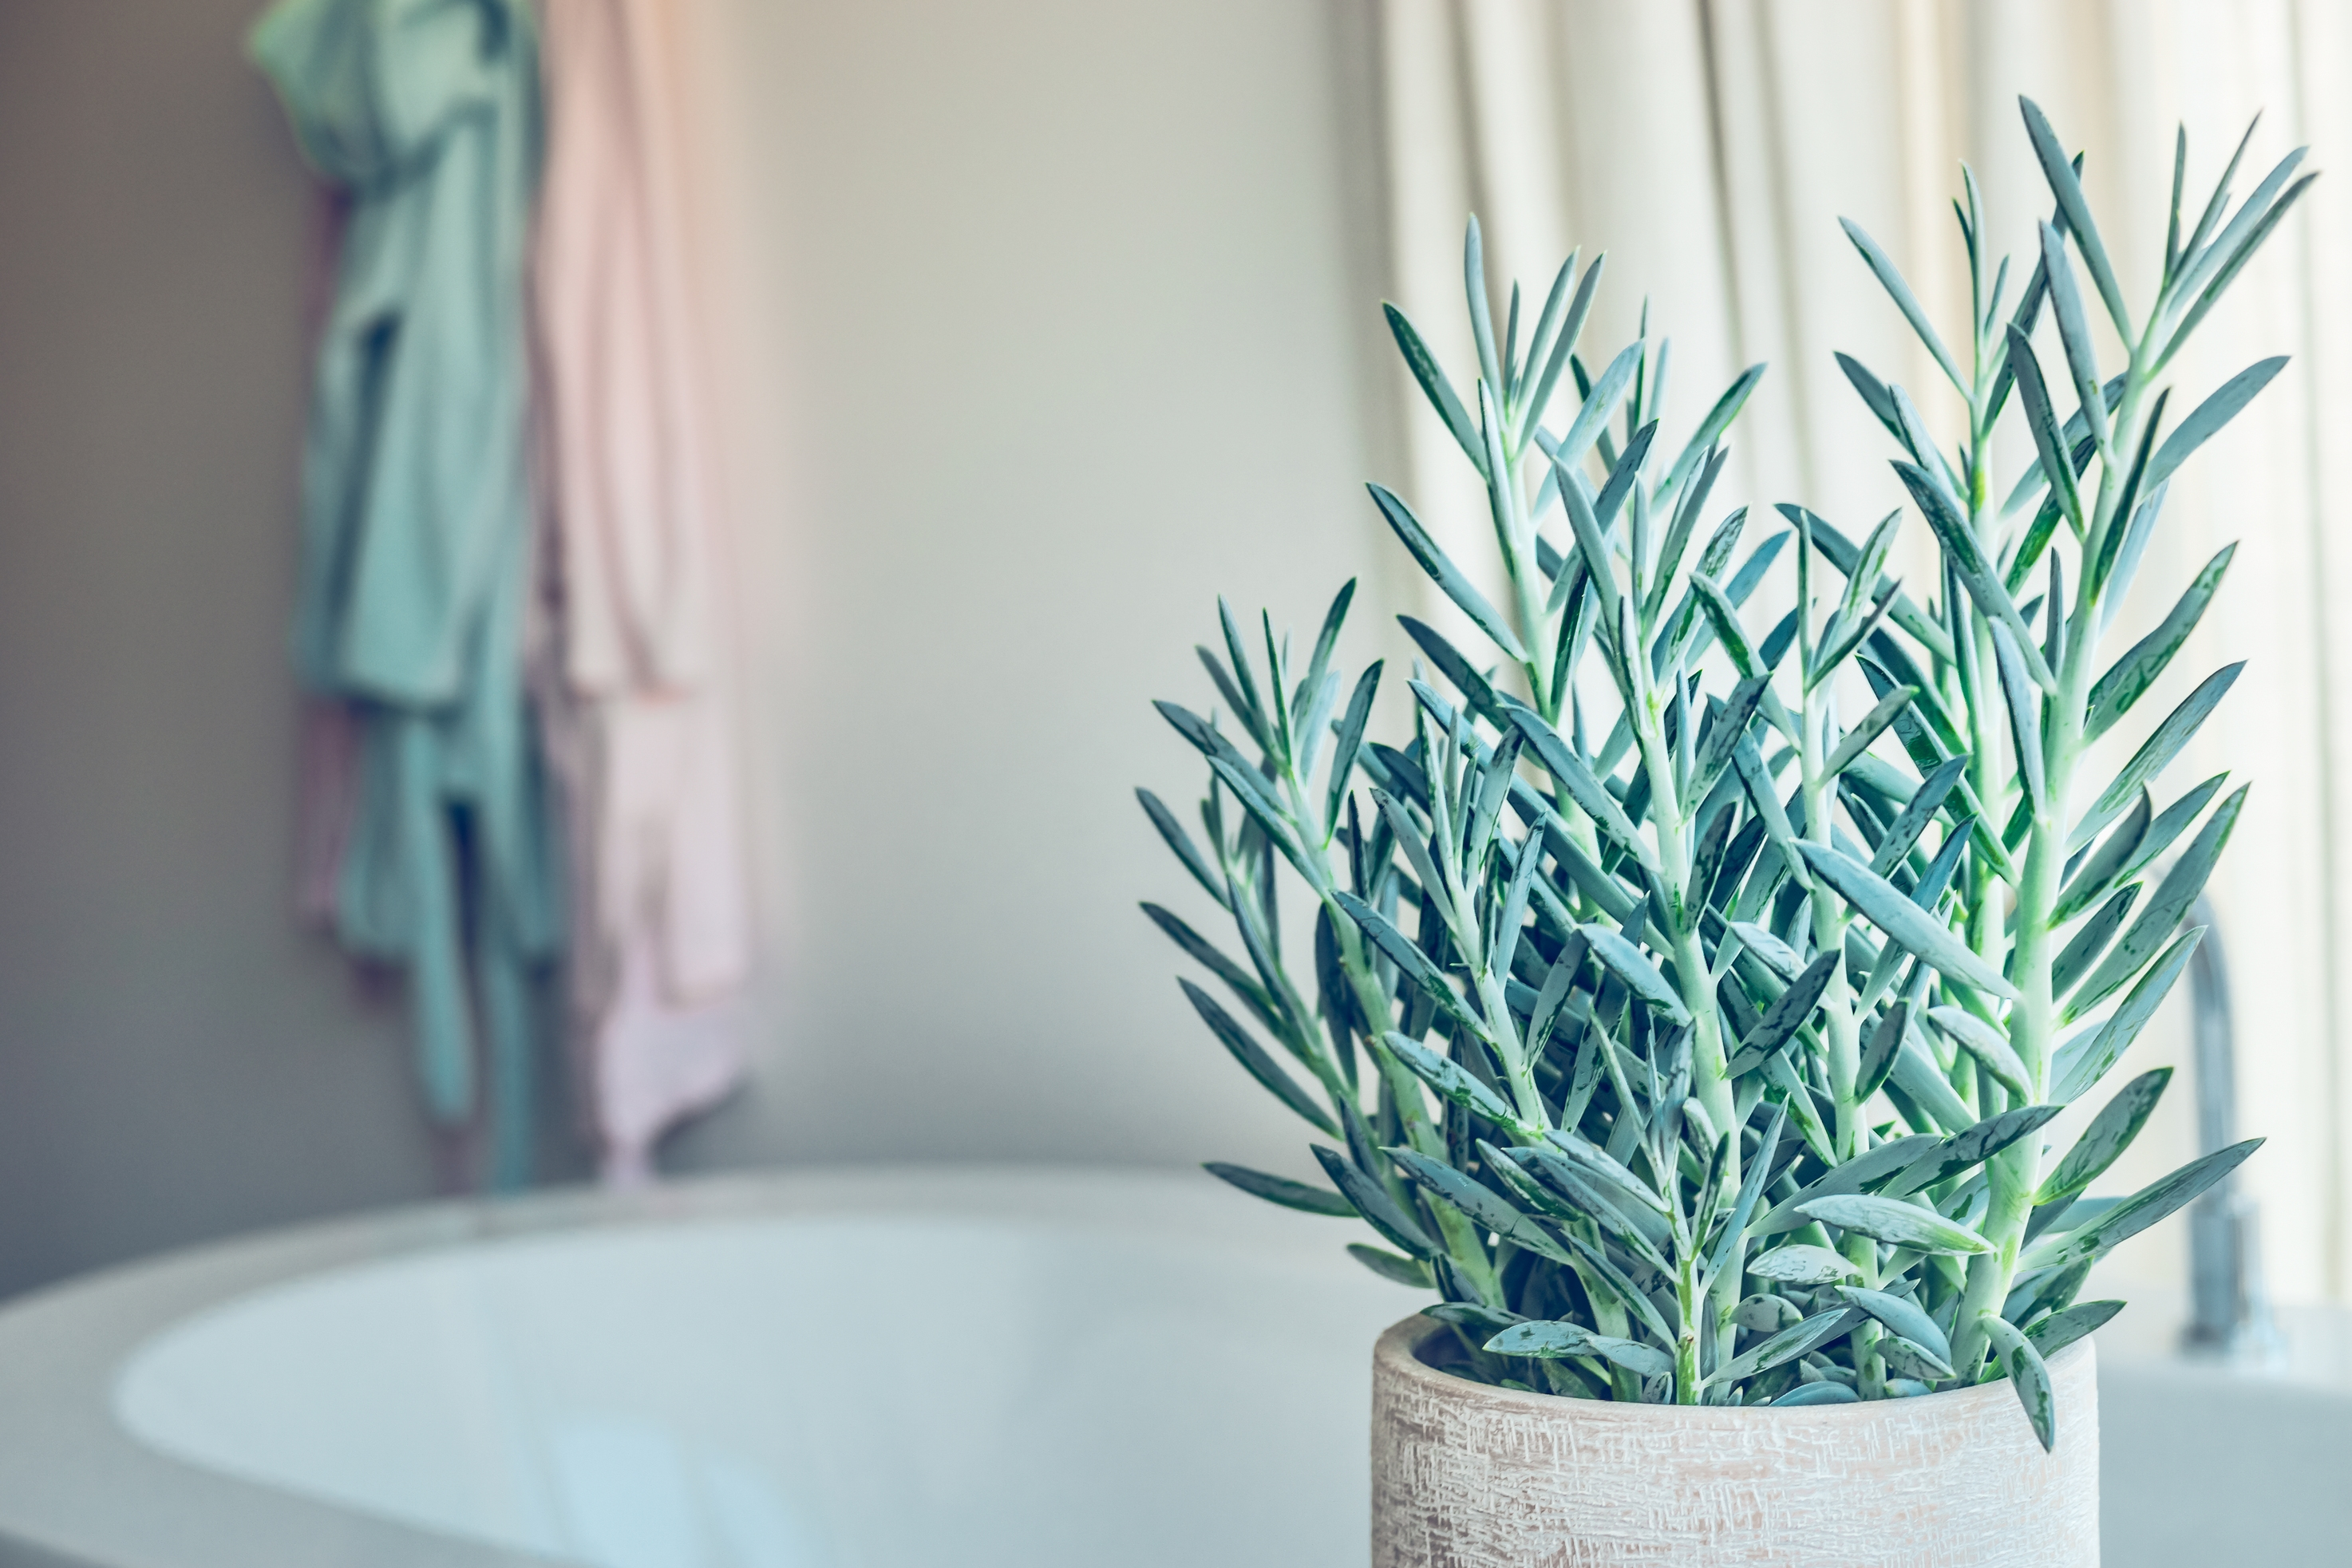 house green plant succulent Senecio serpens or Blue Chalksticks in bathroom close up